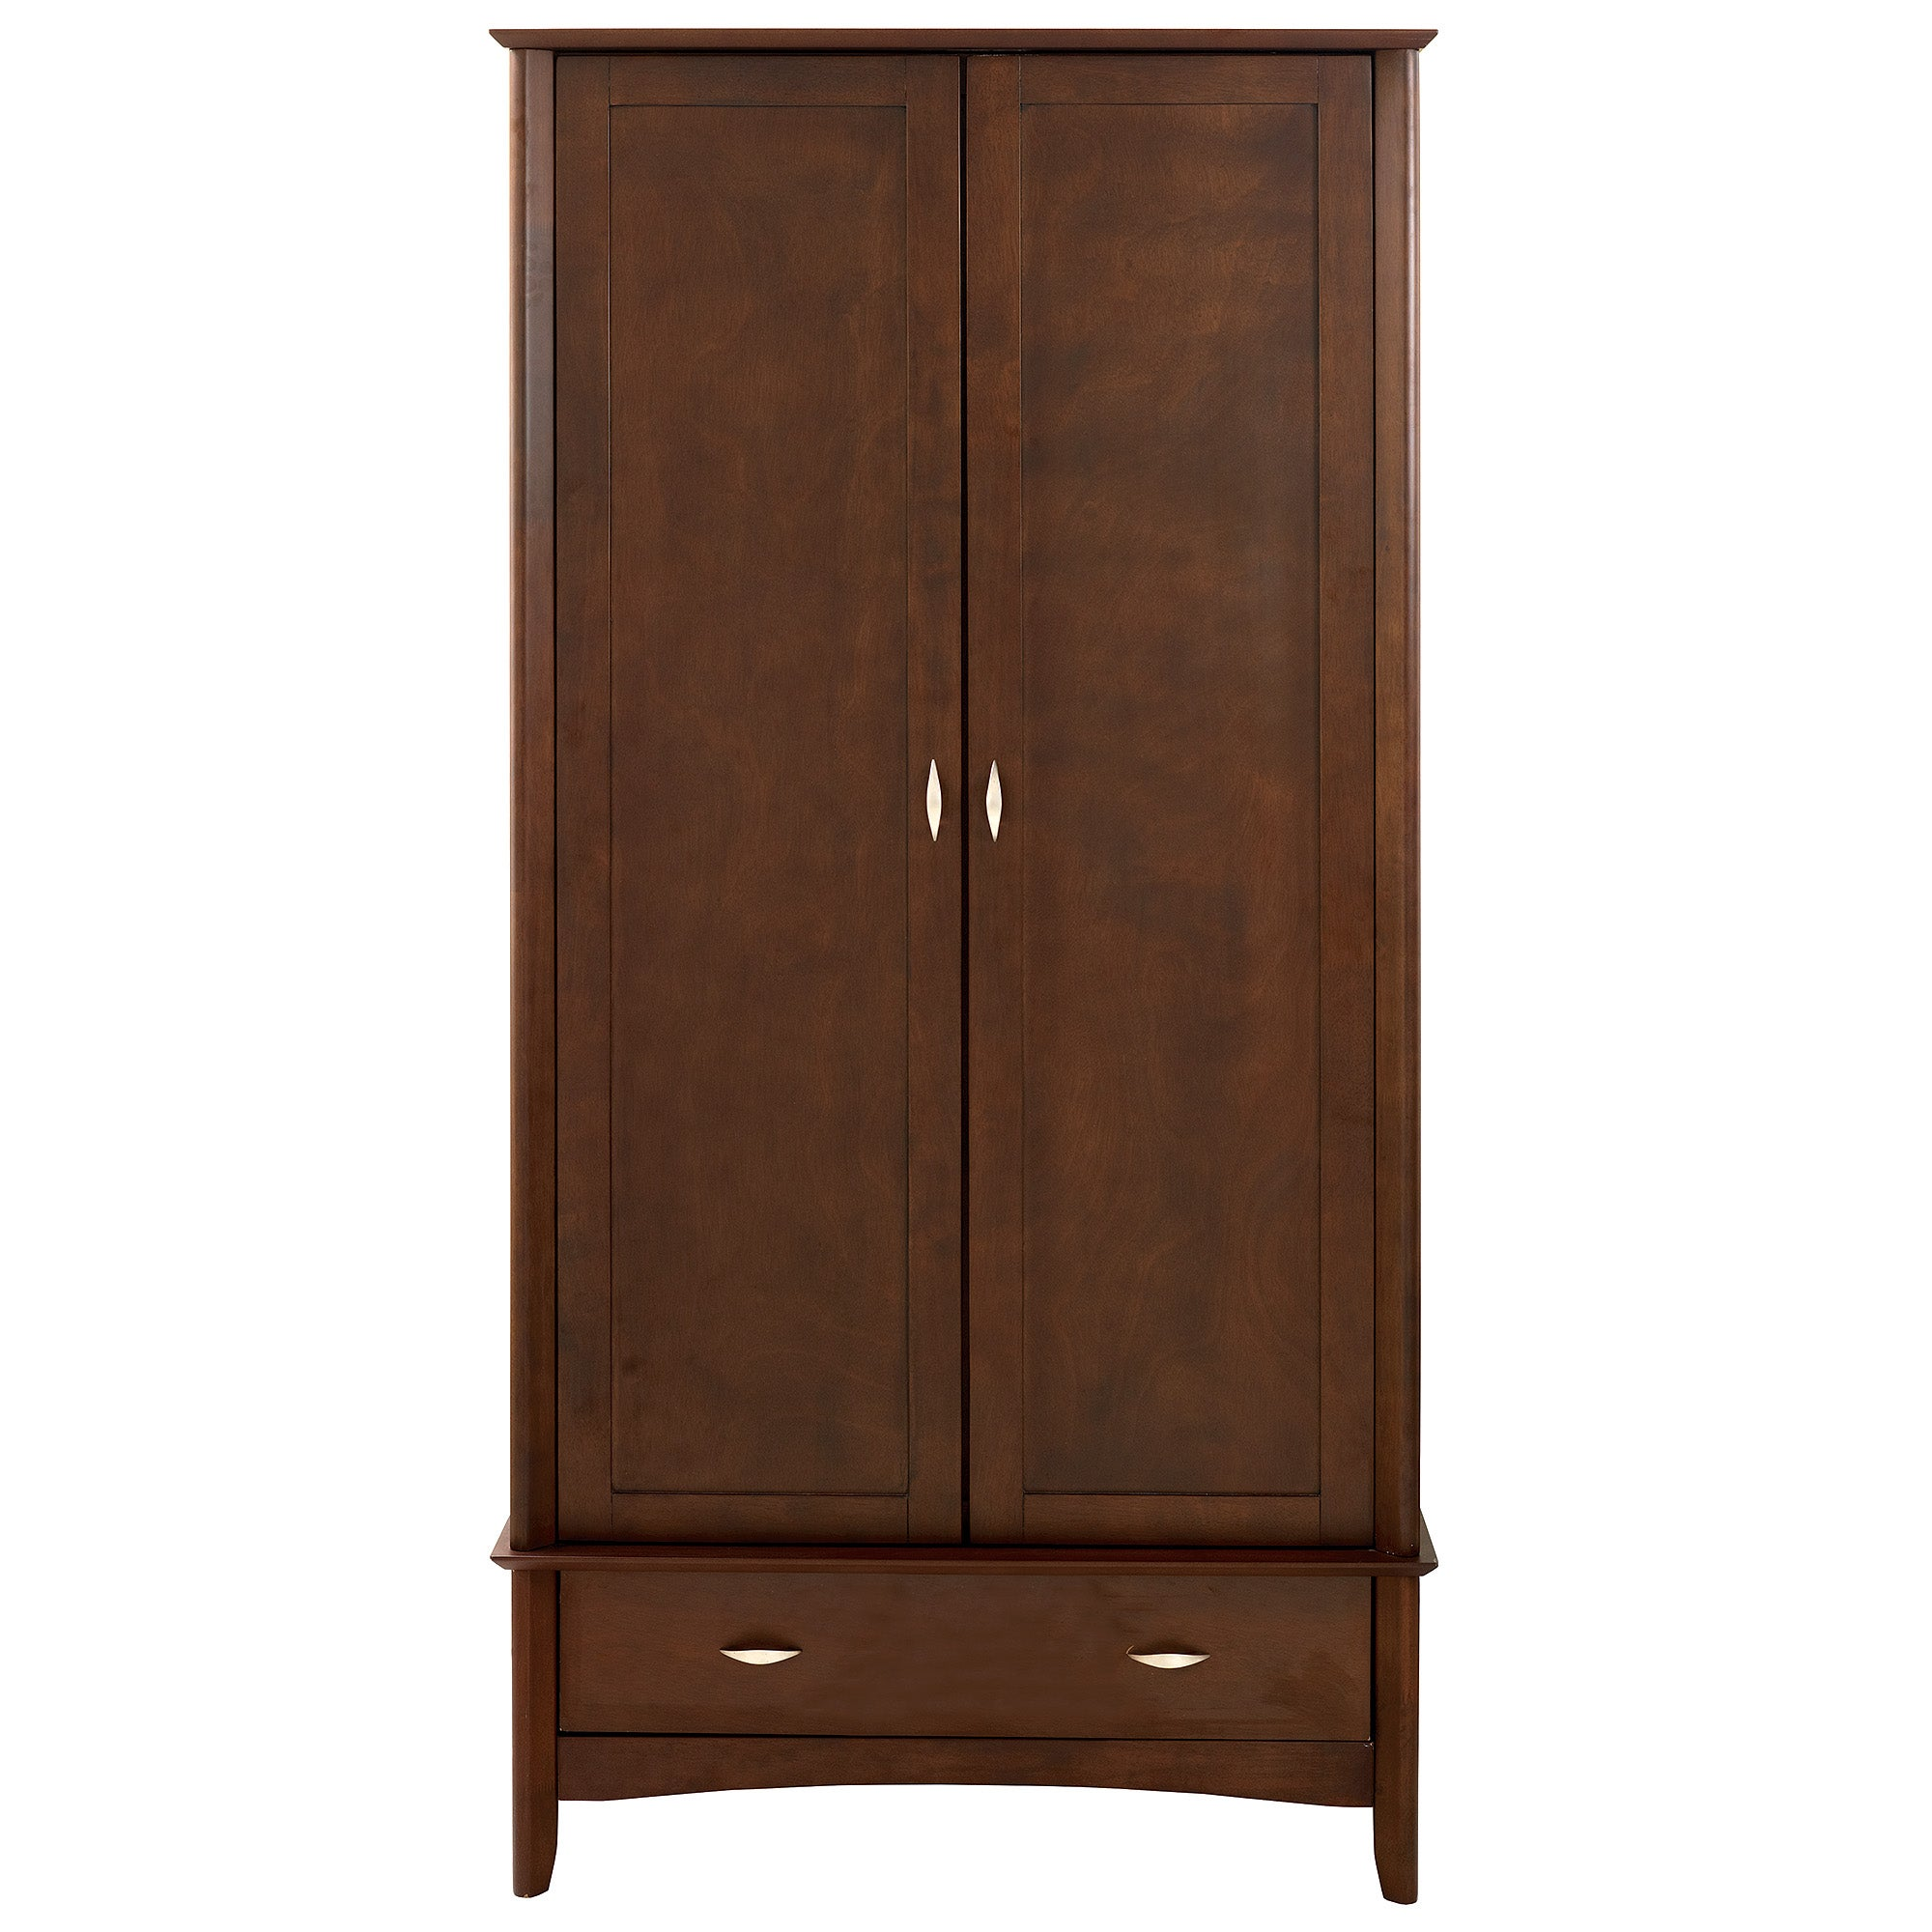 Monet Dark Wood Double Wardrobe